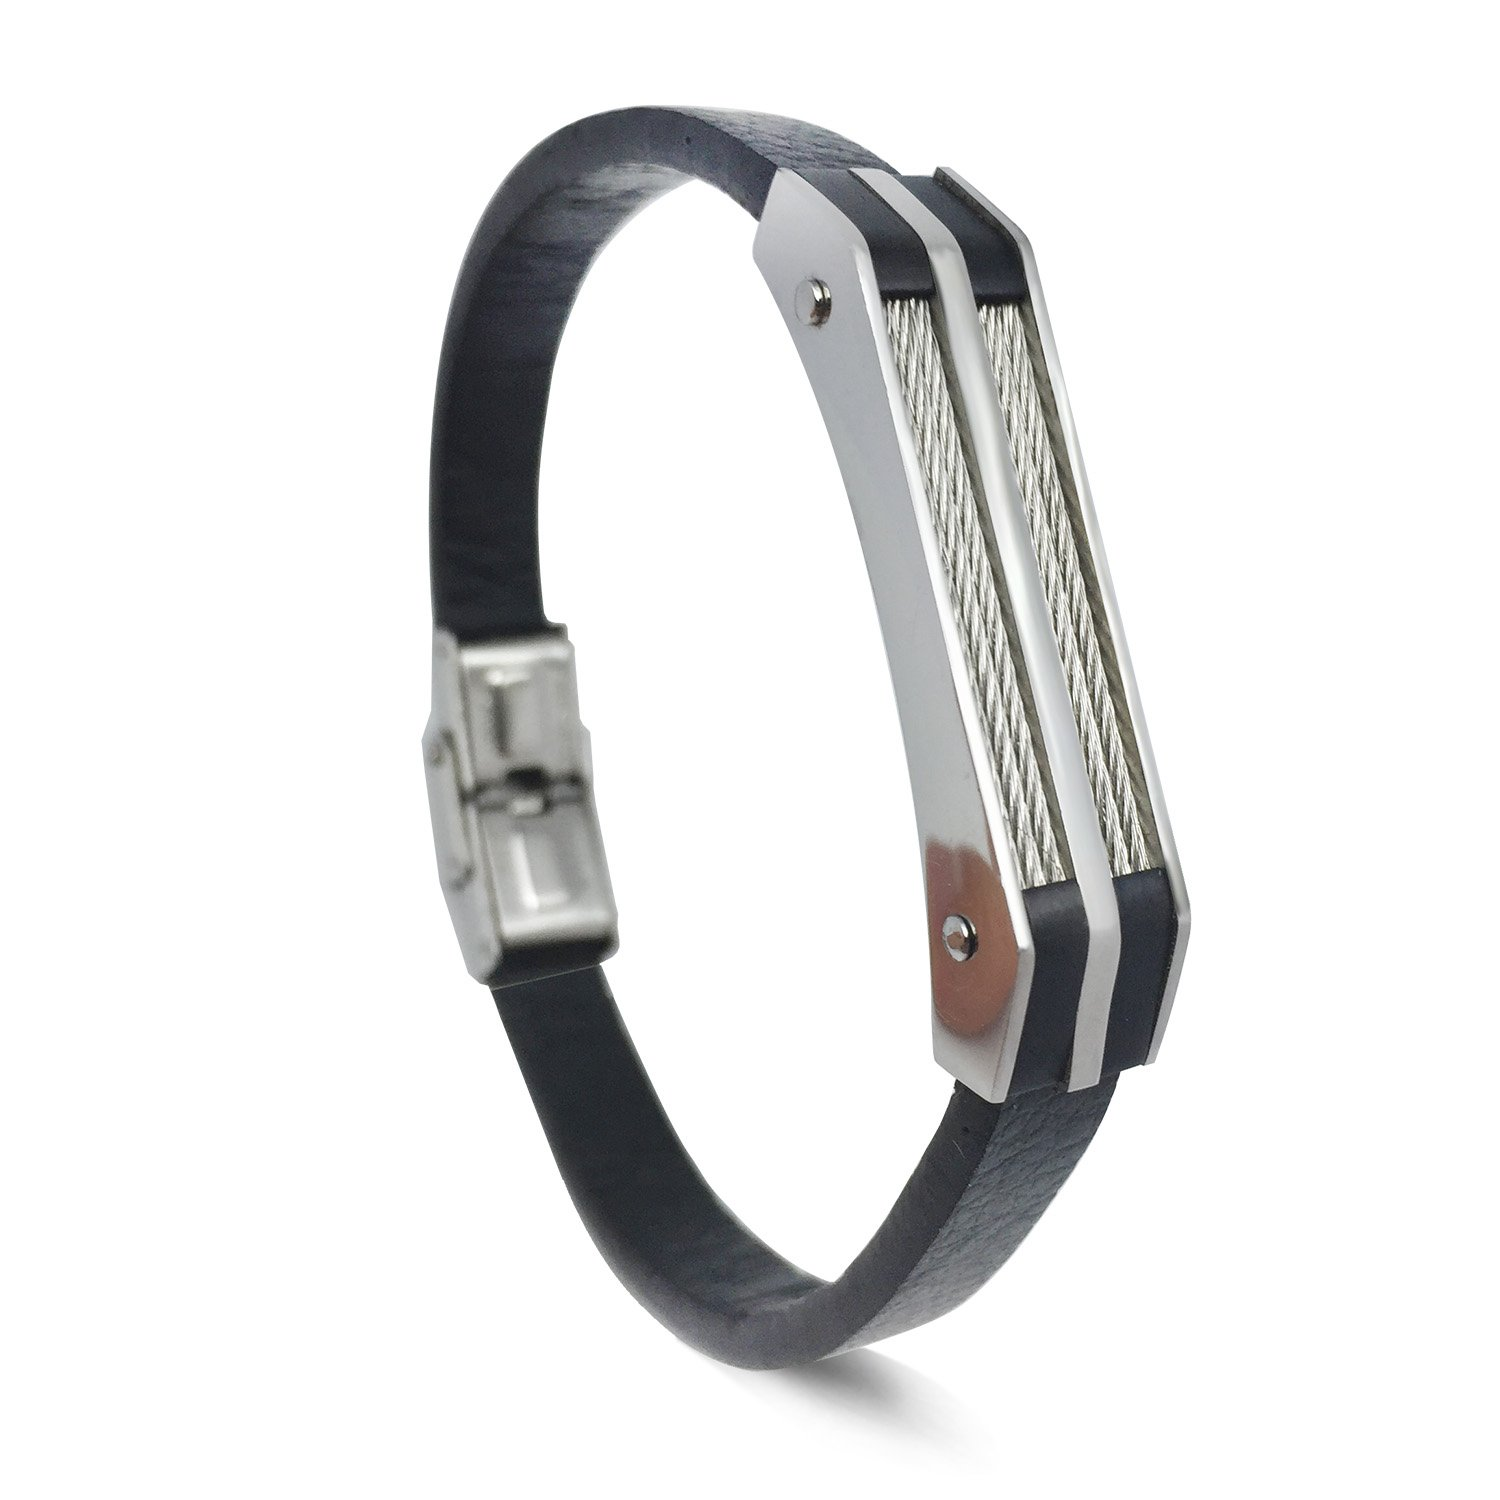 Mens Bracelet Stainless Steel Leather with Black Cowhide Leather Wristband, Wrist Cuff Bangle With Fold Over Clasp, Bracelet For Men 8.5 inch